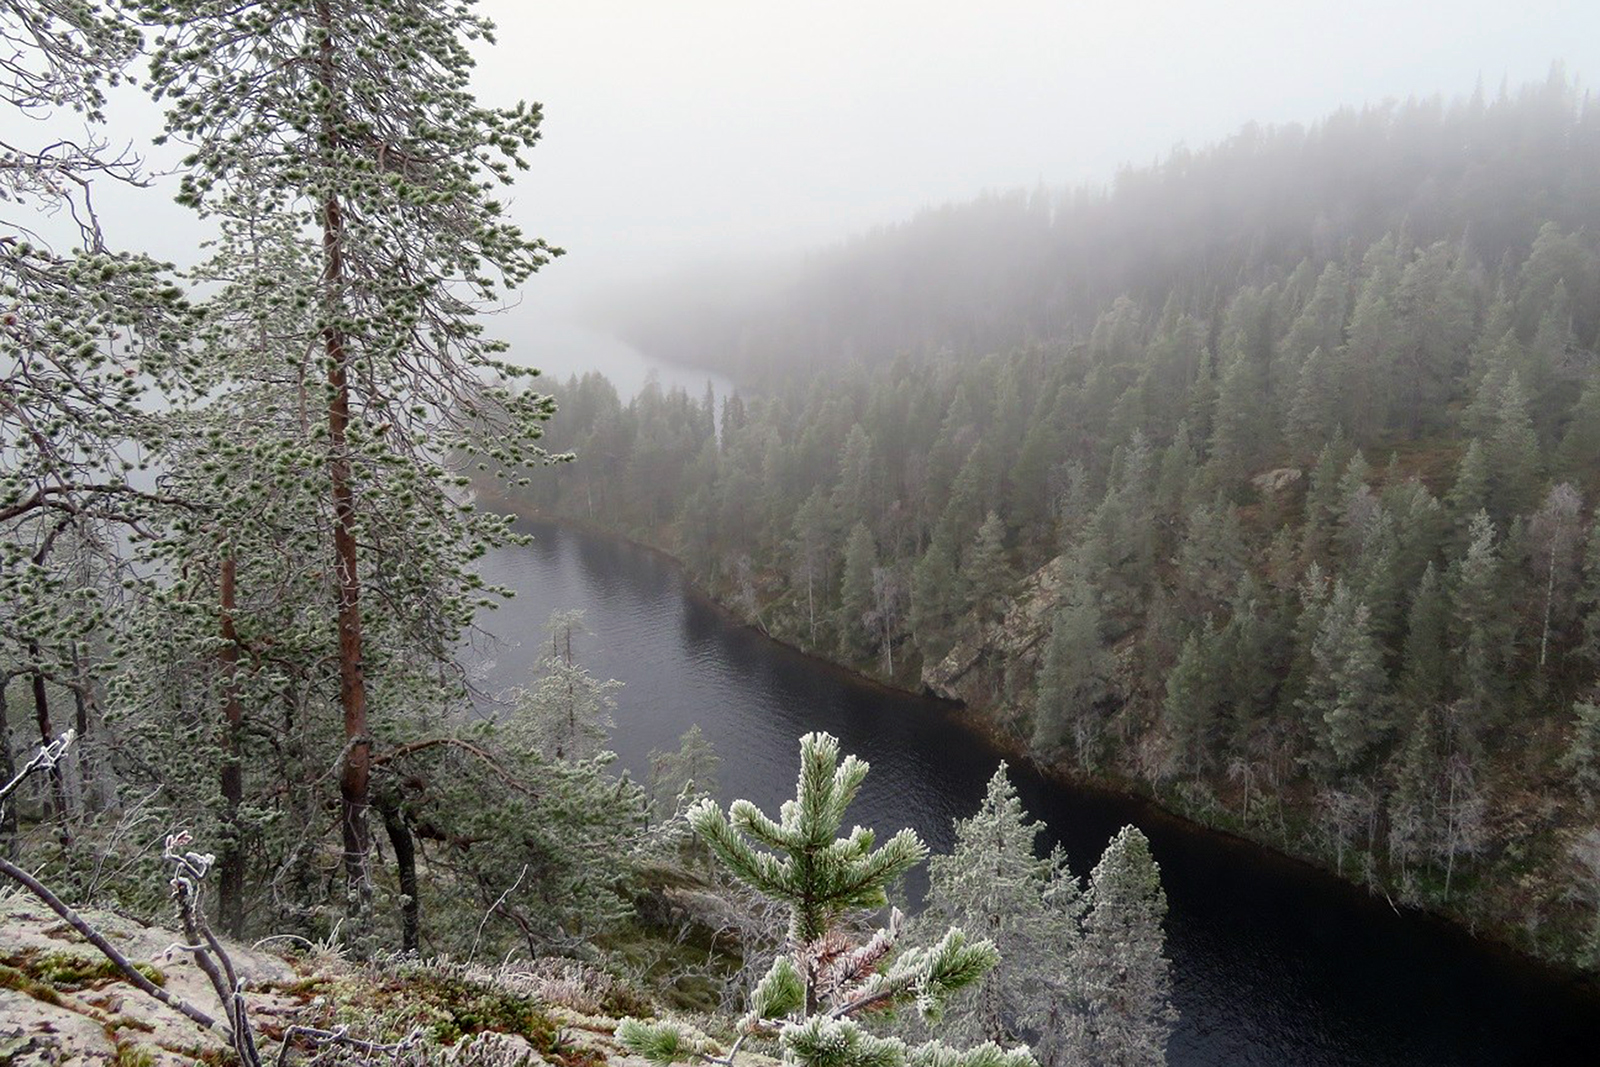 Porontima Canyon is one of the pearls of Kuusamo nature tourism. Photo: Laila Hökkä